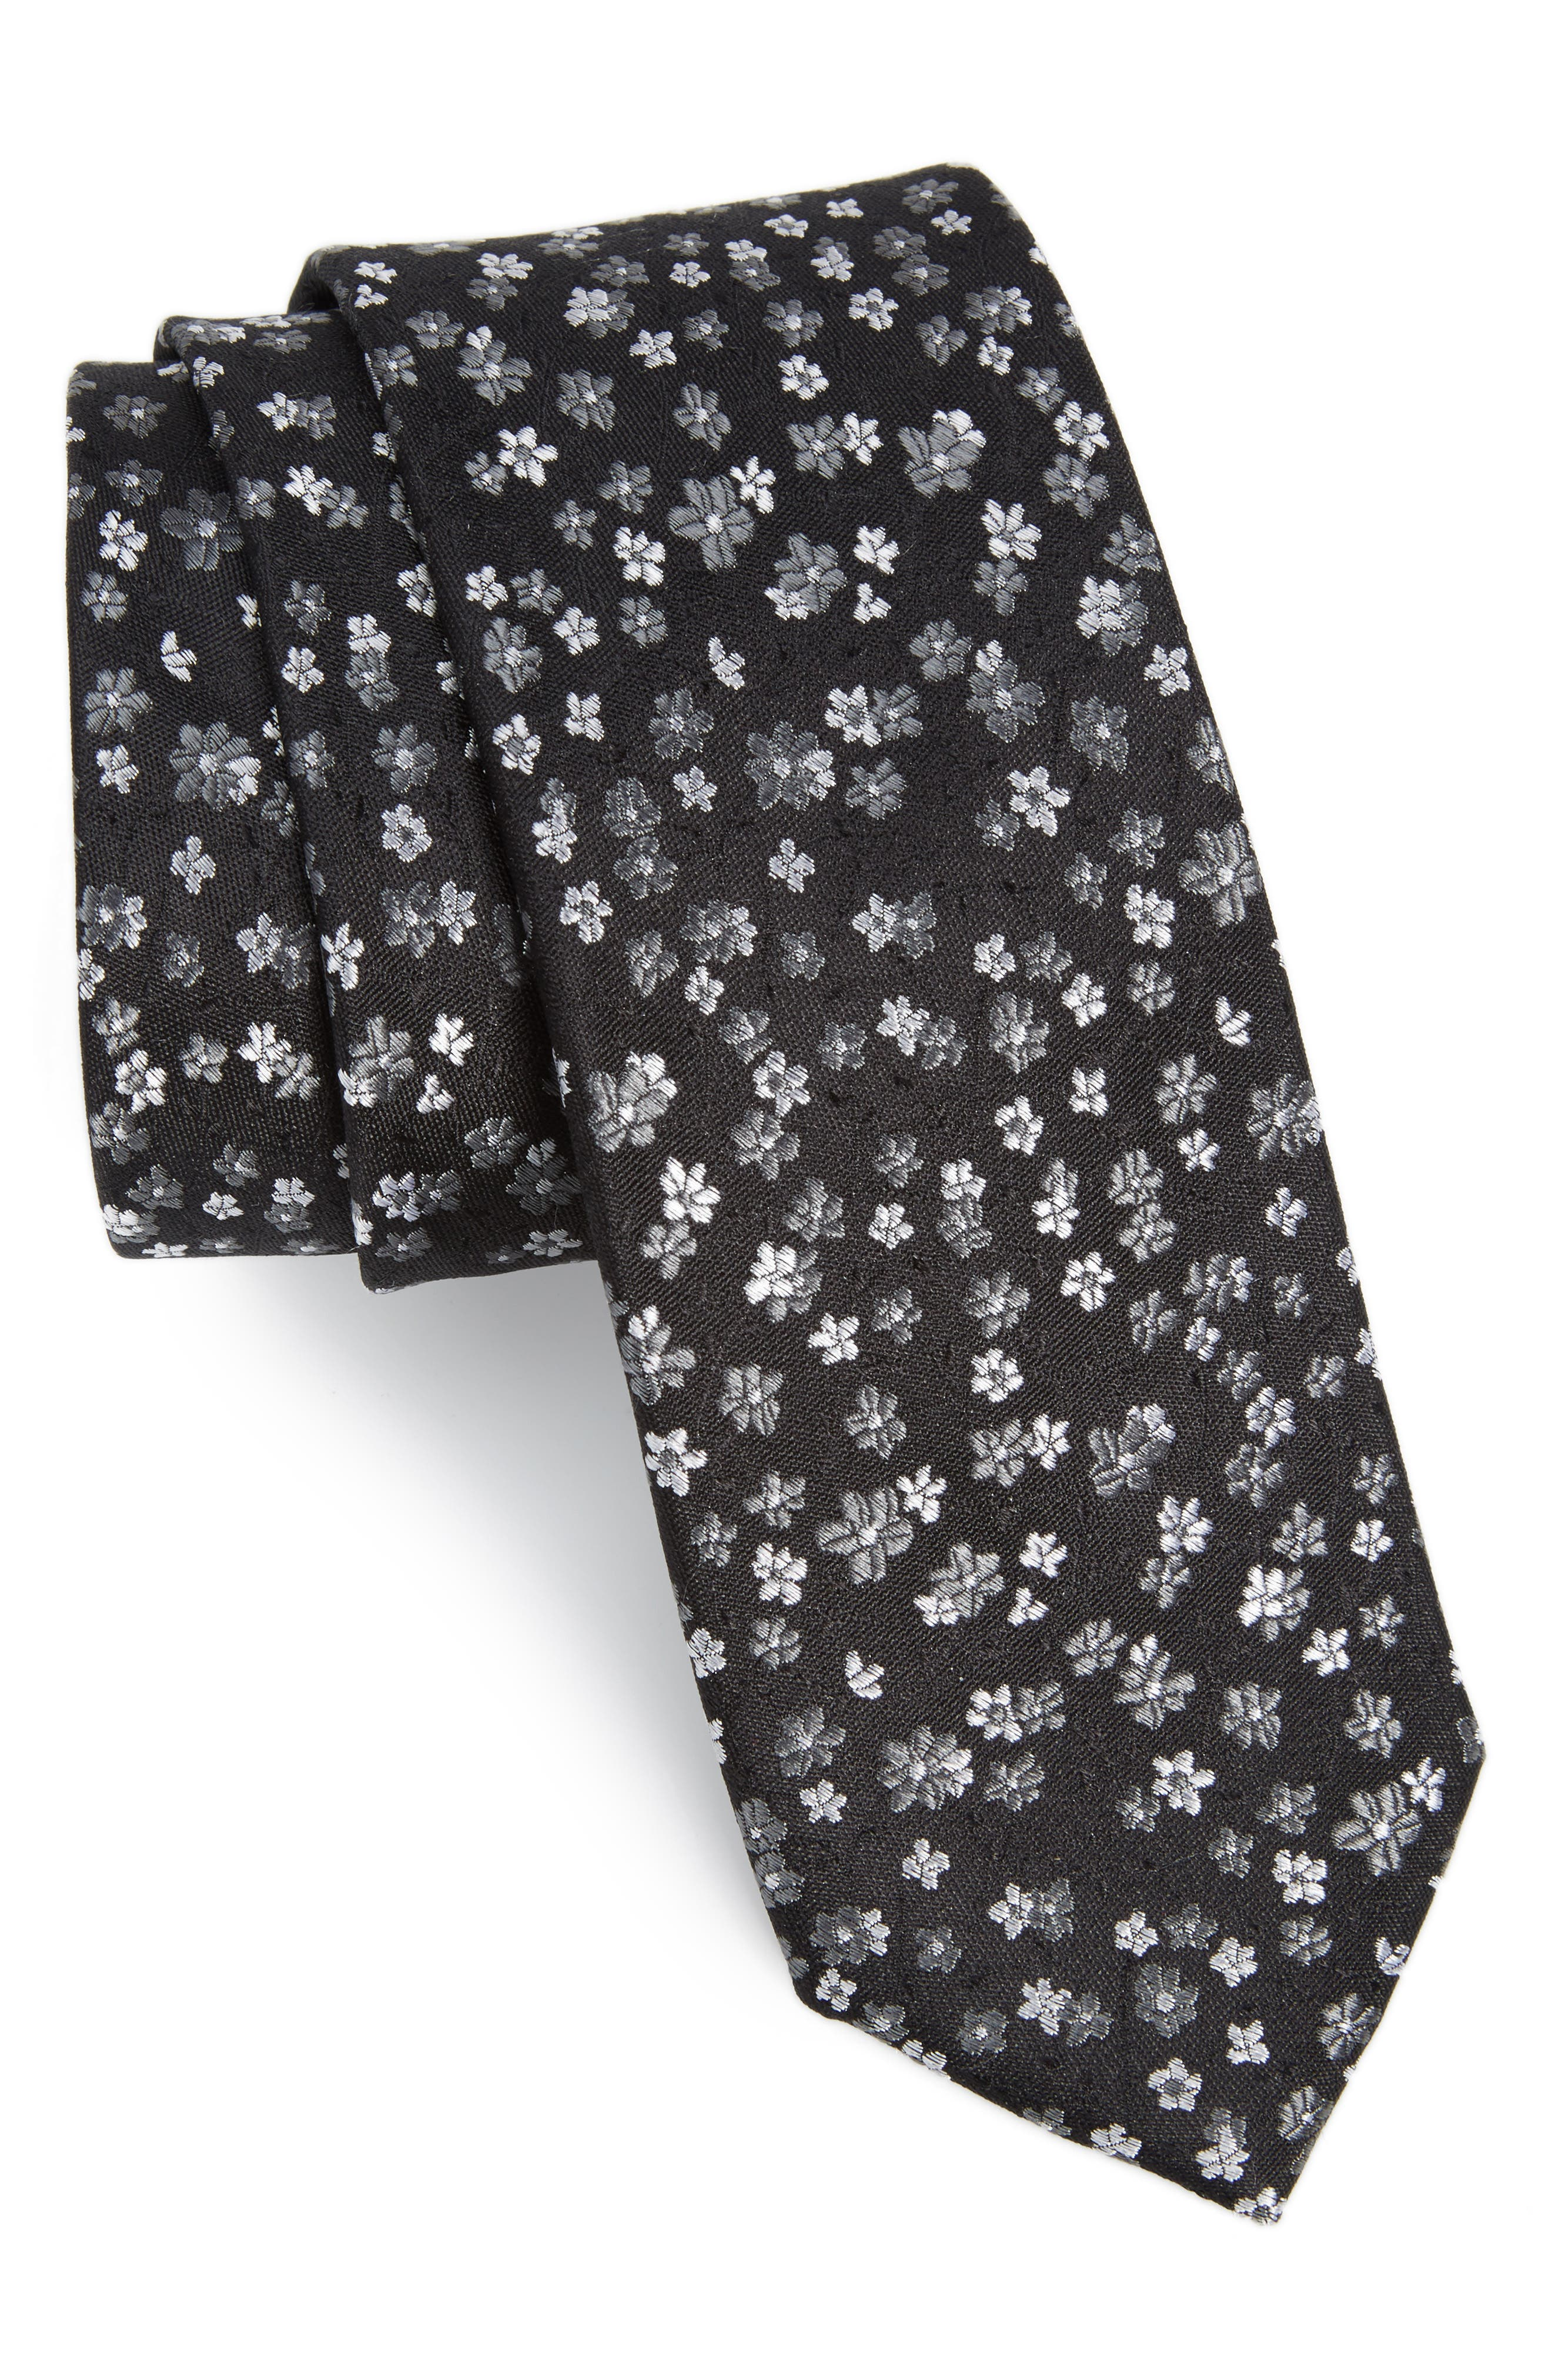 Freefall Floral Silk Tie,                             Main thumbnail 1, color,                             001